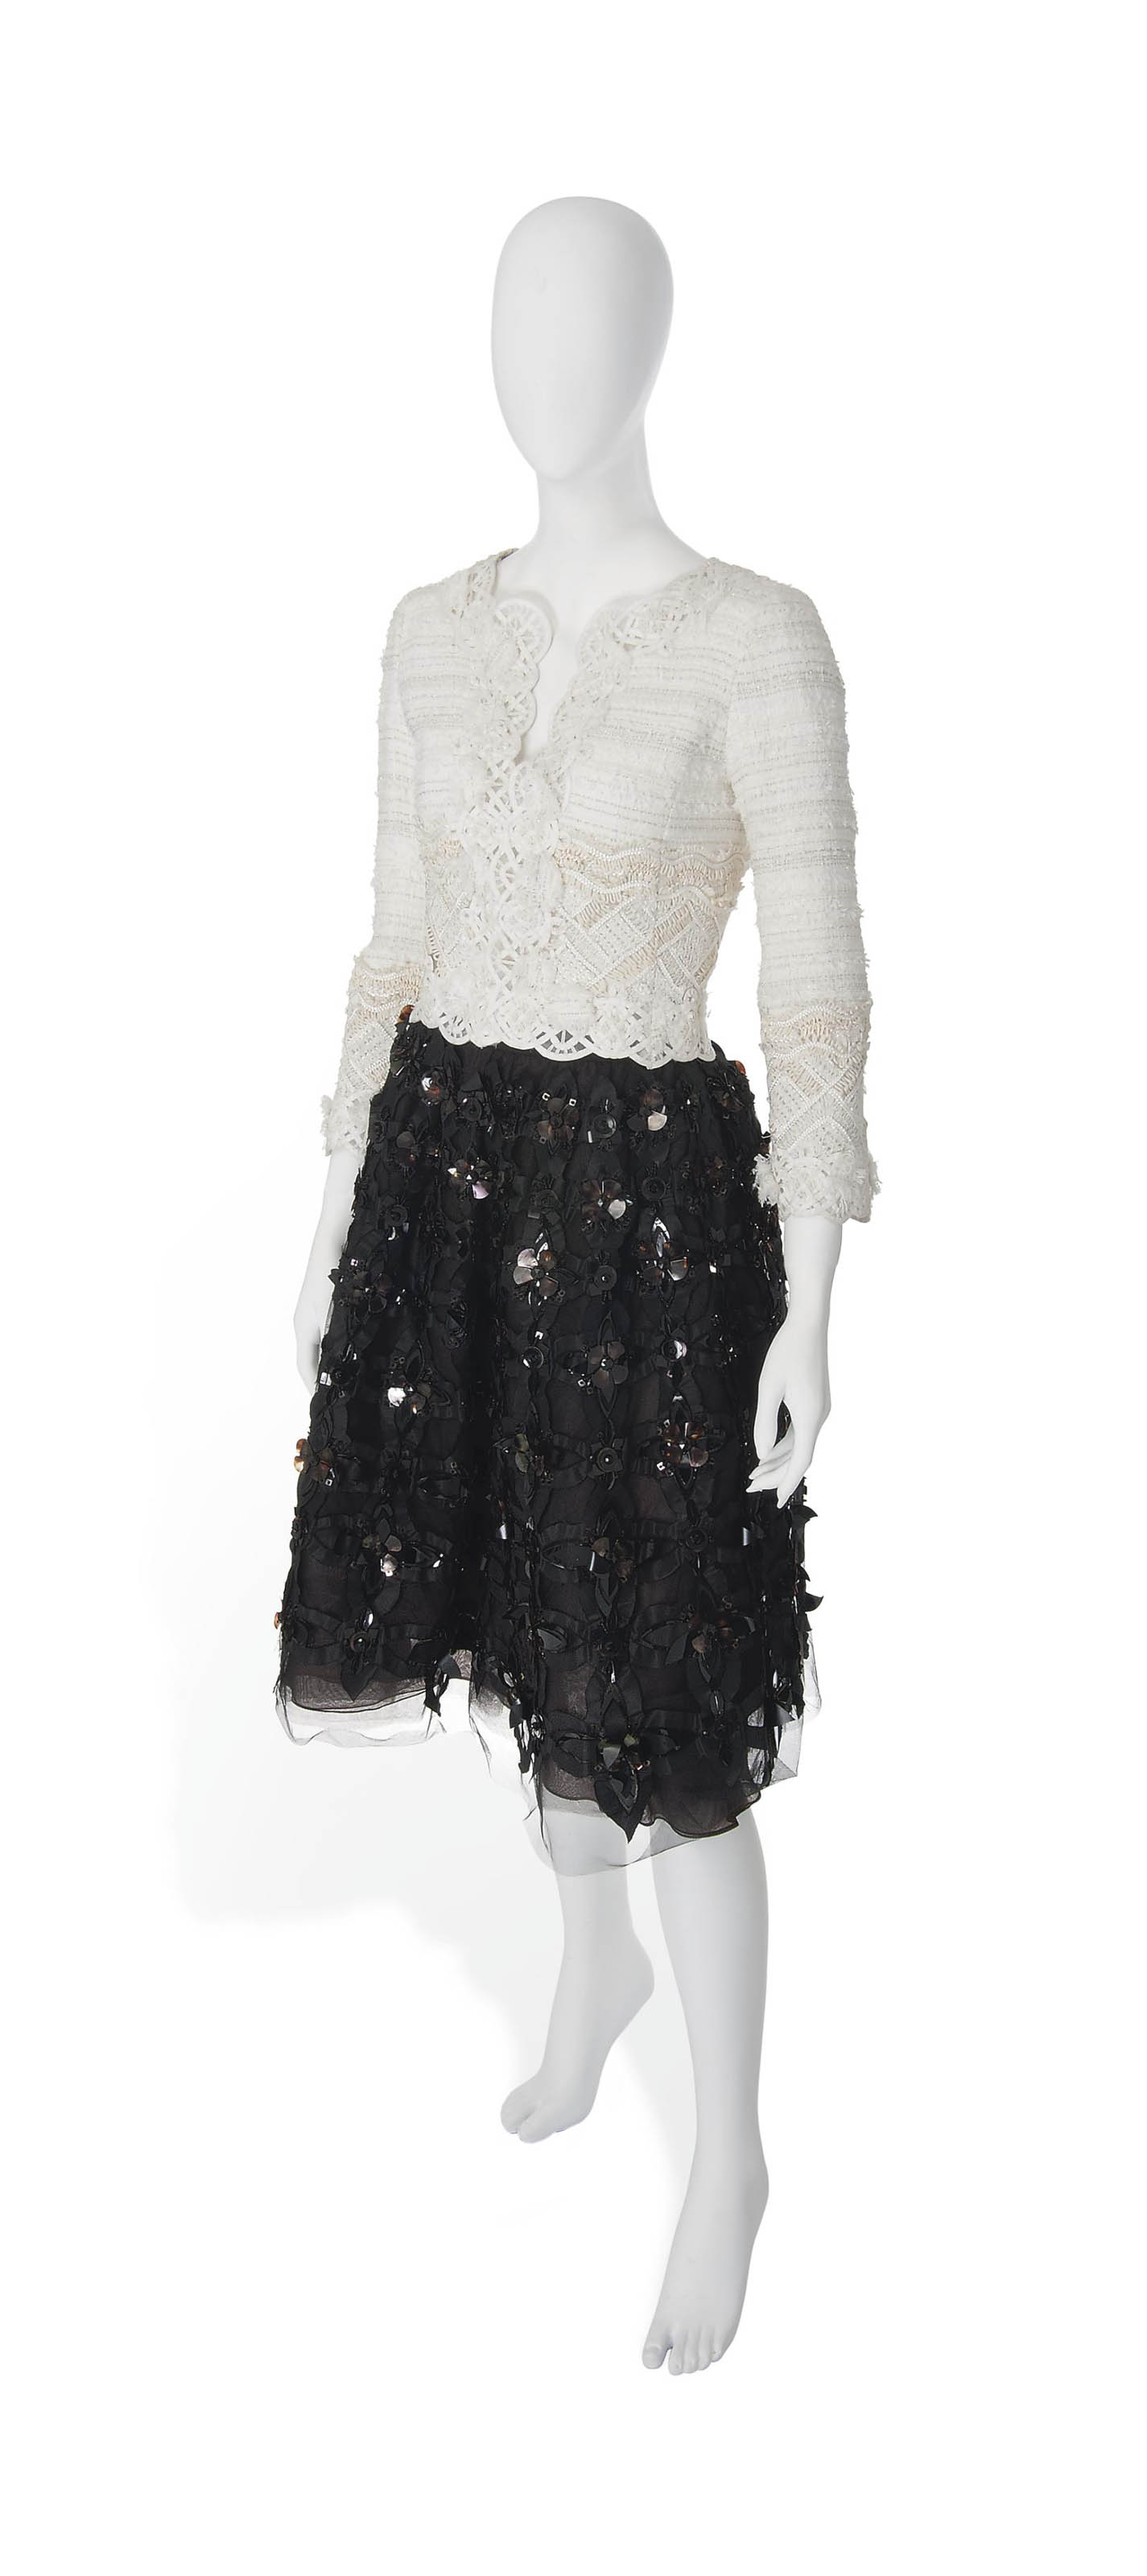 A CREAM BOUCLÉ TWEED SKIRT SUIT AND A BLACK EMBELLISHED TULLE SKIRT